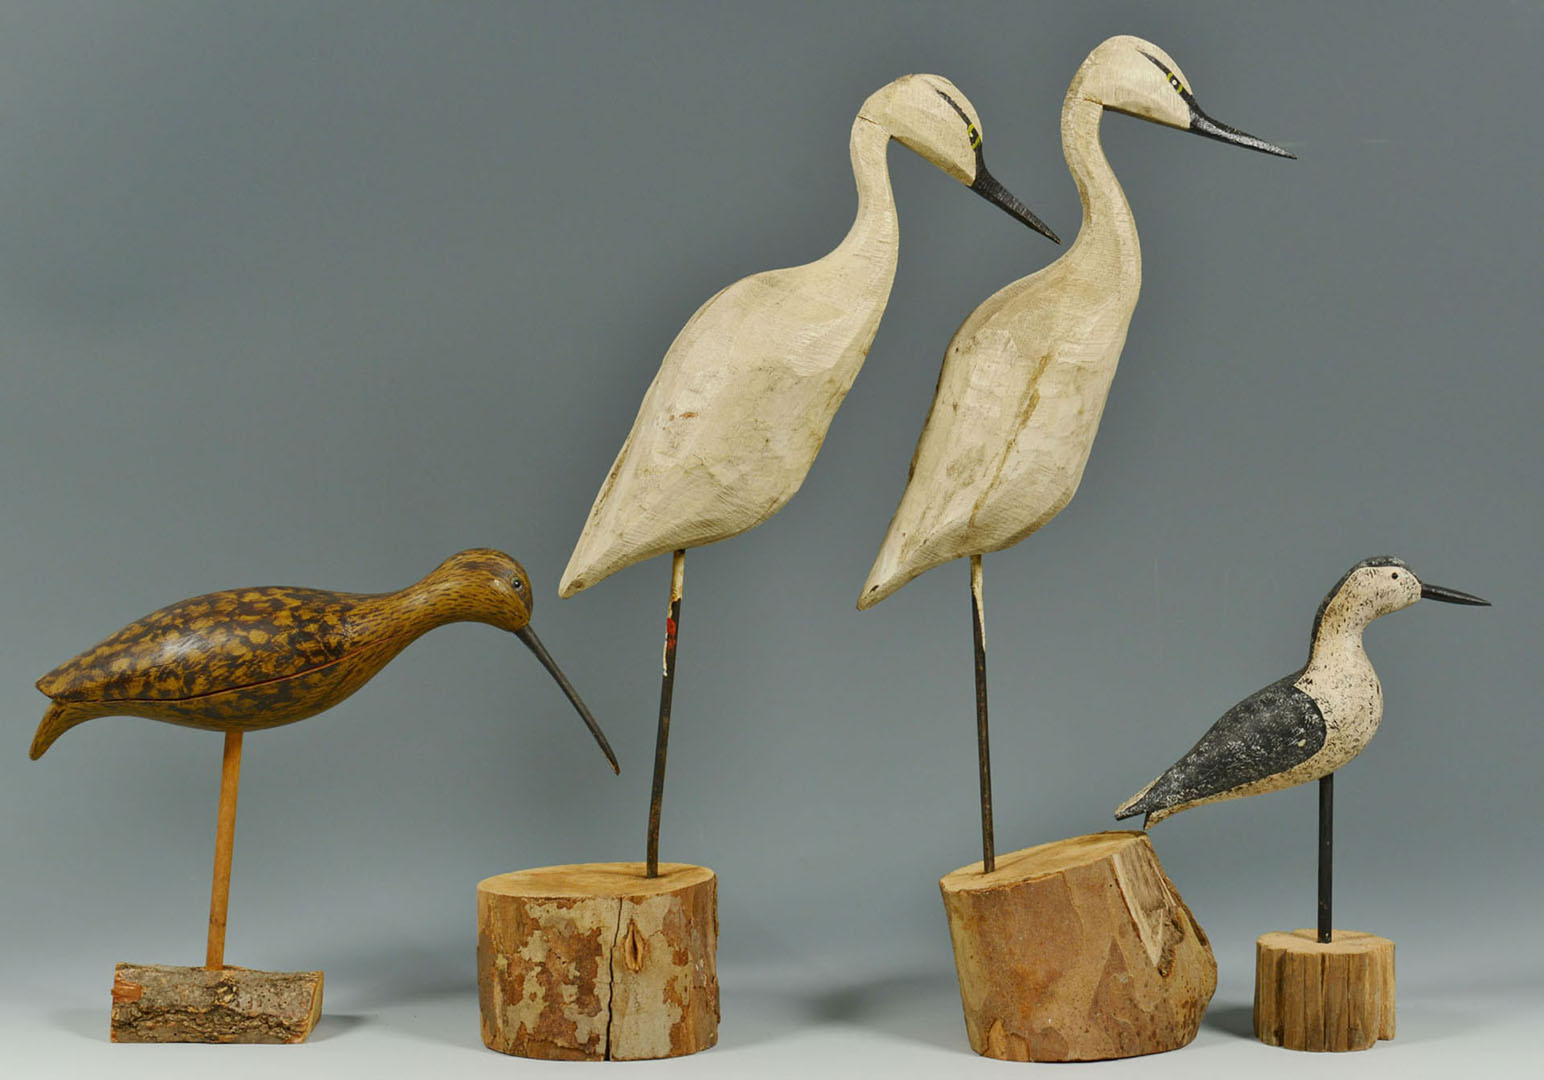 Lot 2872301: 8 assorted Carvings and Decoys, various makers